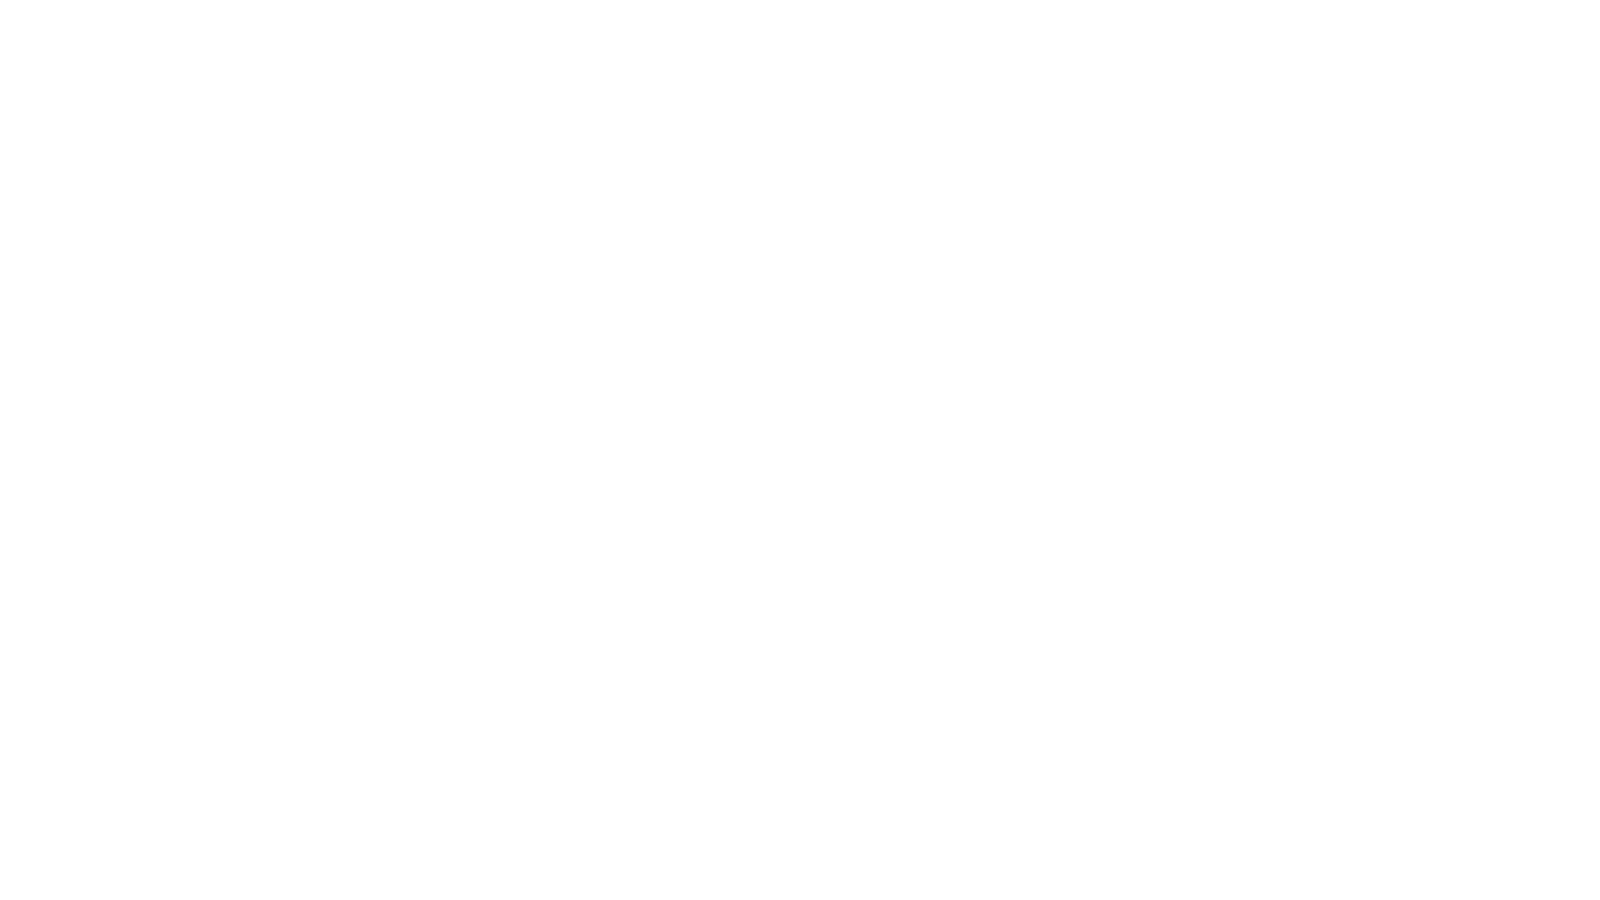 Illustration, in white on a black background, of the Ollin Monitor Arm, shows height specifications.